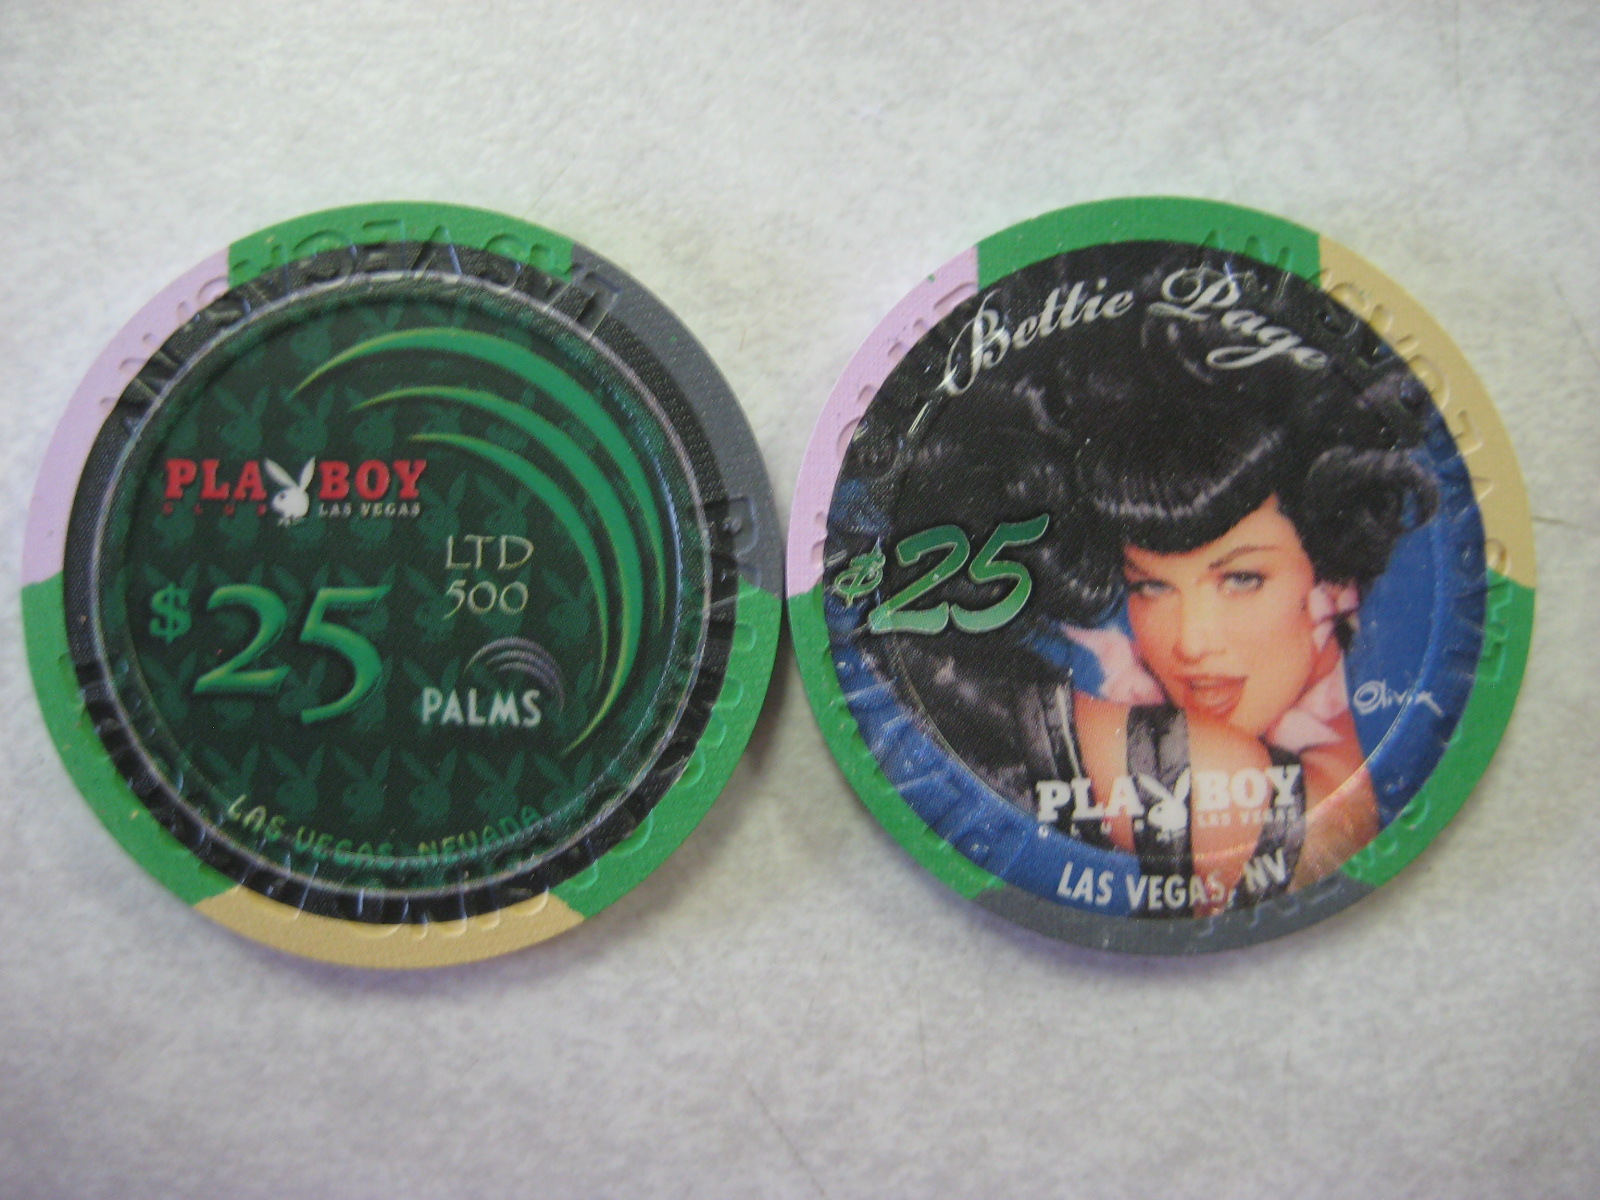 Bettie Page $25 Chips 4th Anniversary Palms Playboy Club